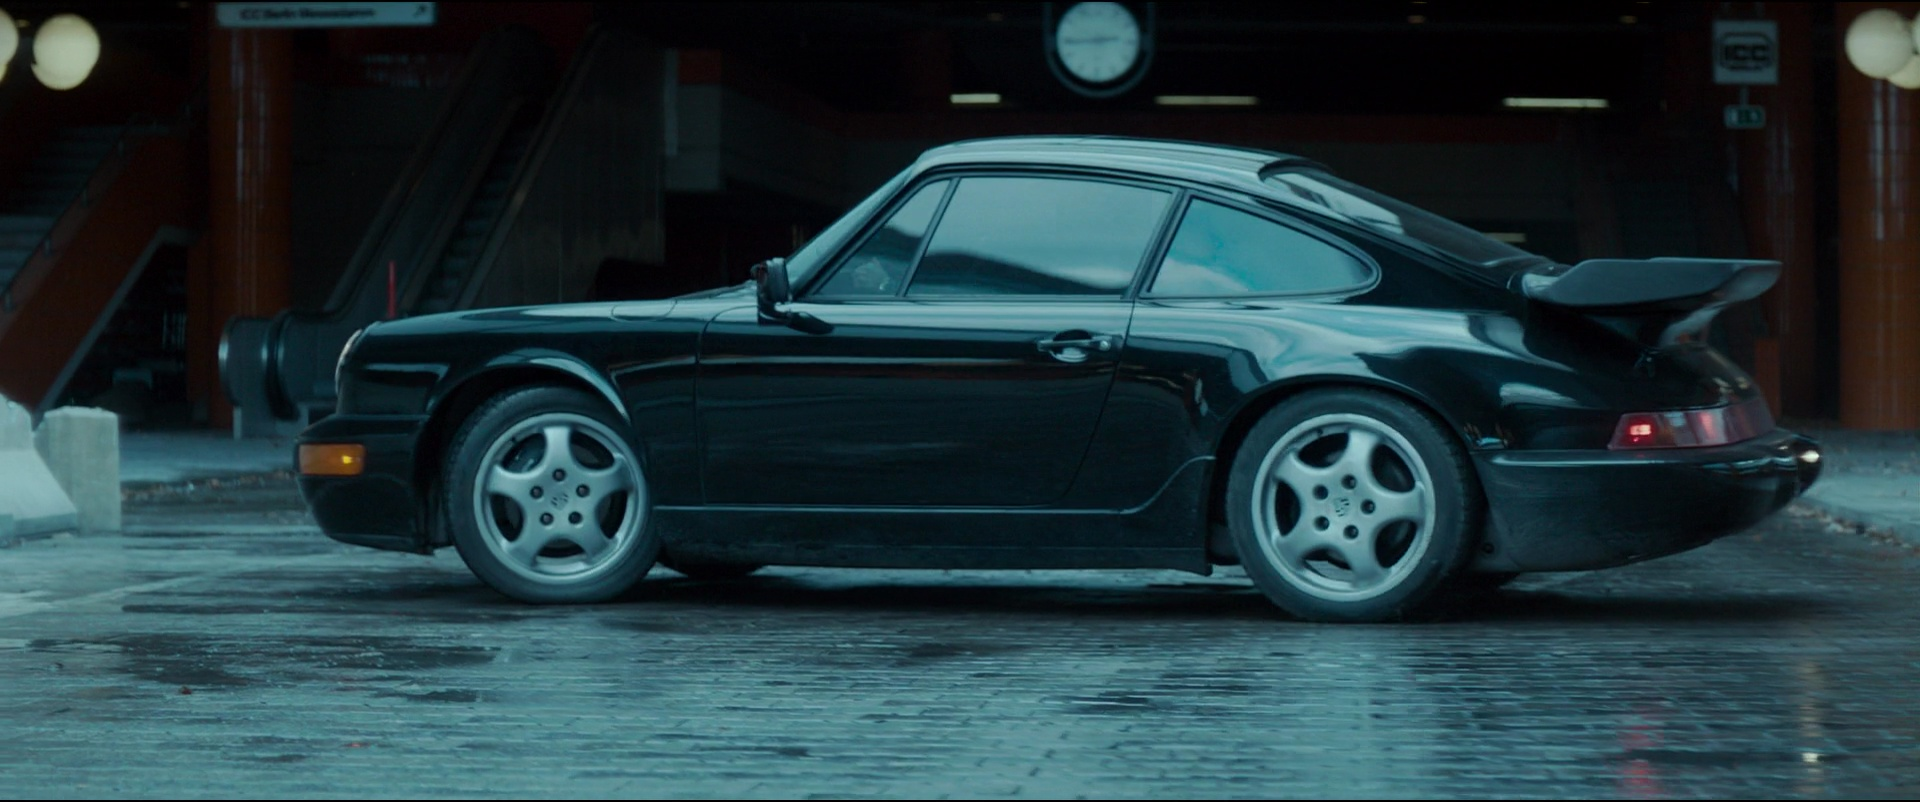 Porsche Carrera Car Used By James Mcavoy In Atomic Blonde on Chrysler Sebring 2 7